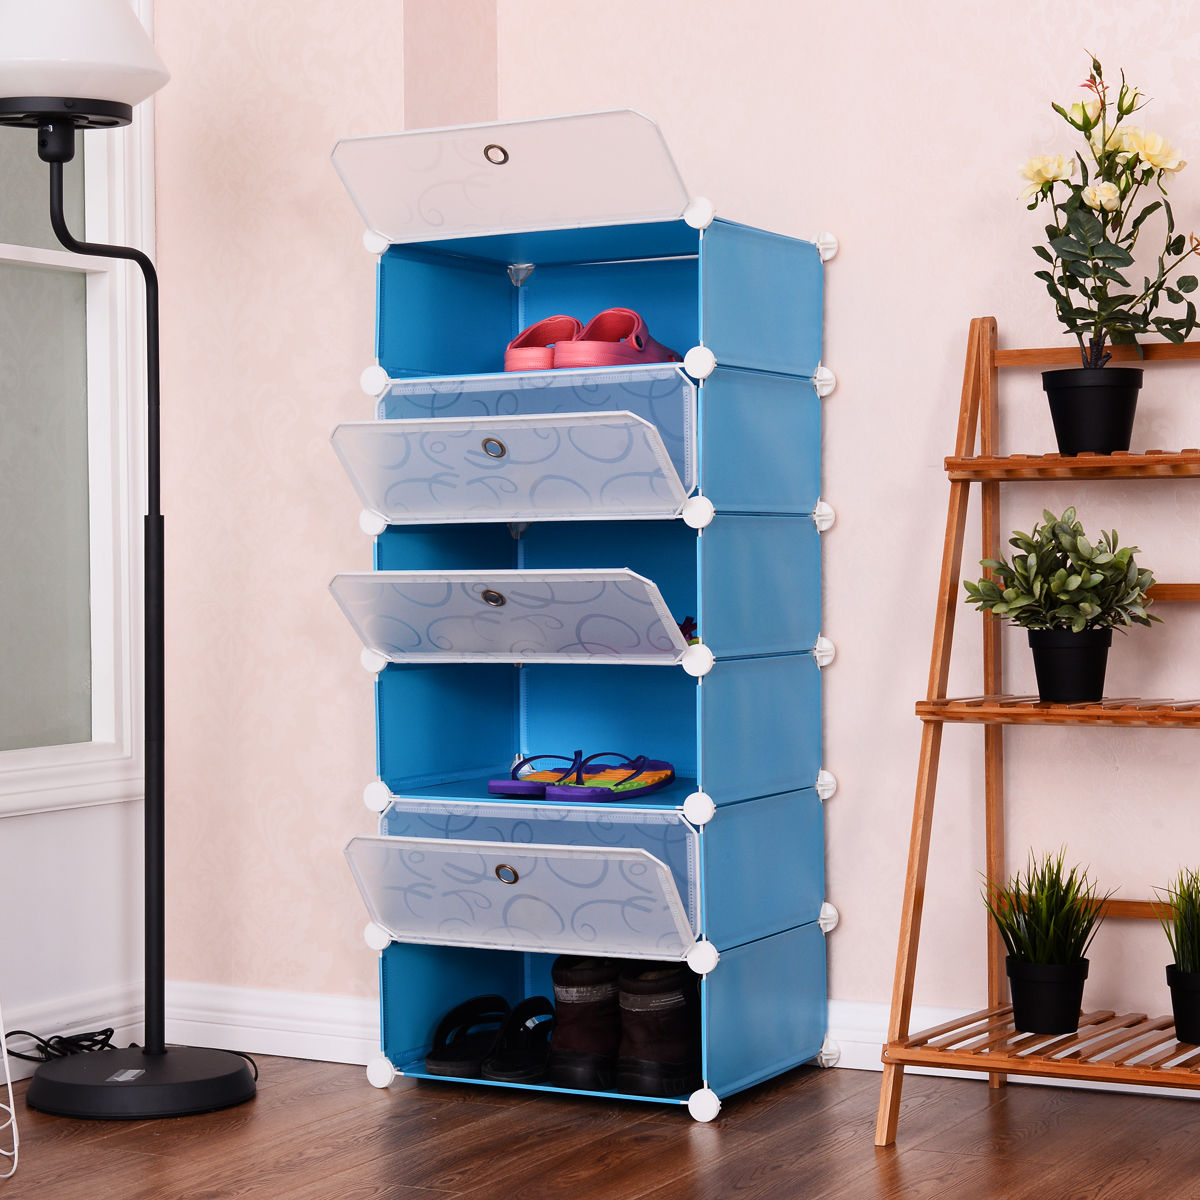 Costway 6 Cubic Portable Shoe Rack Shelf Cabinet Storage Closet Organizer  Home Furniture